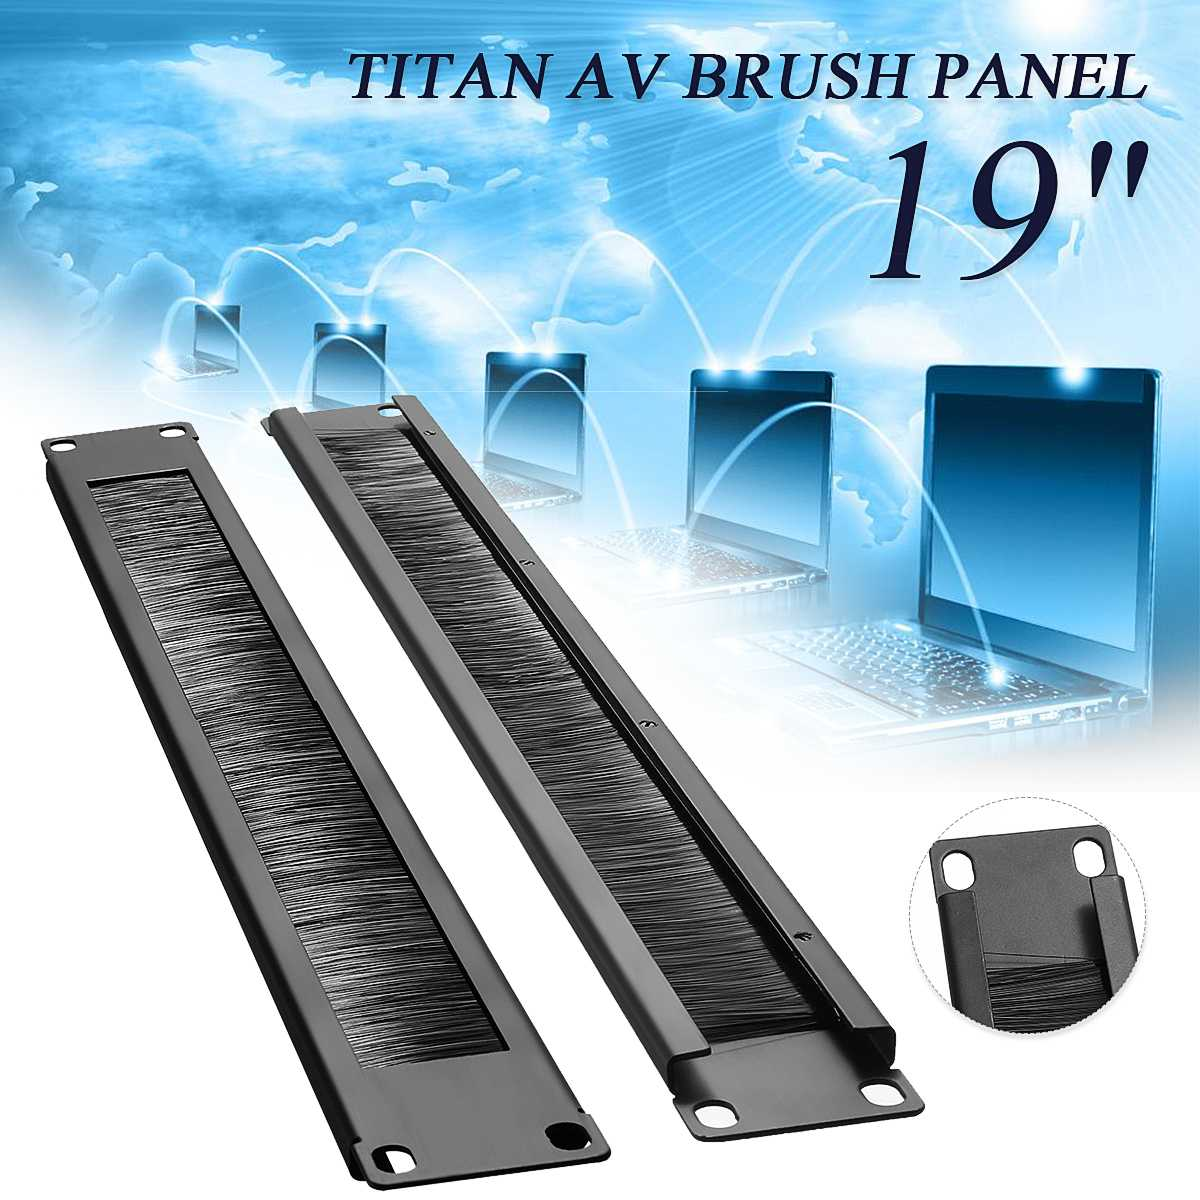 1U 19 Inch Rack Mount IT Network Cabinet Brush Panel Bar Slot For Cable Management